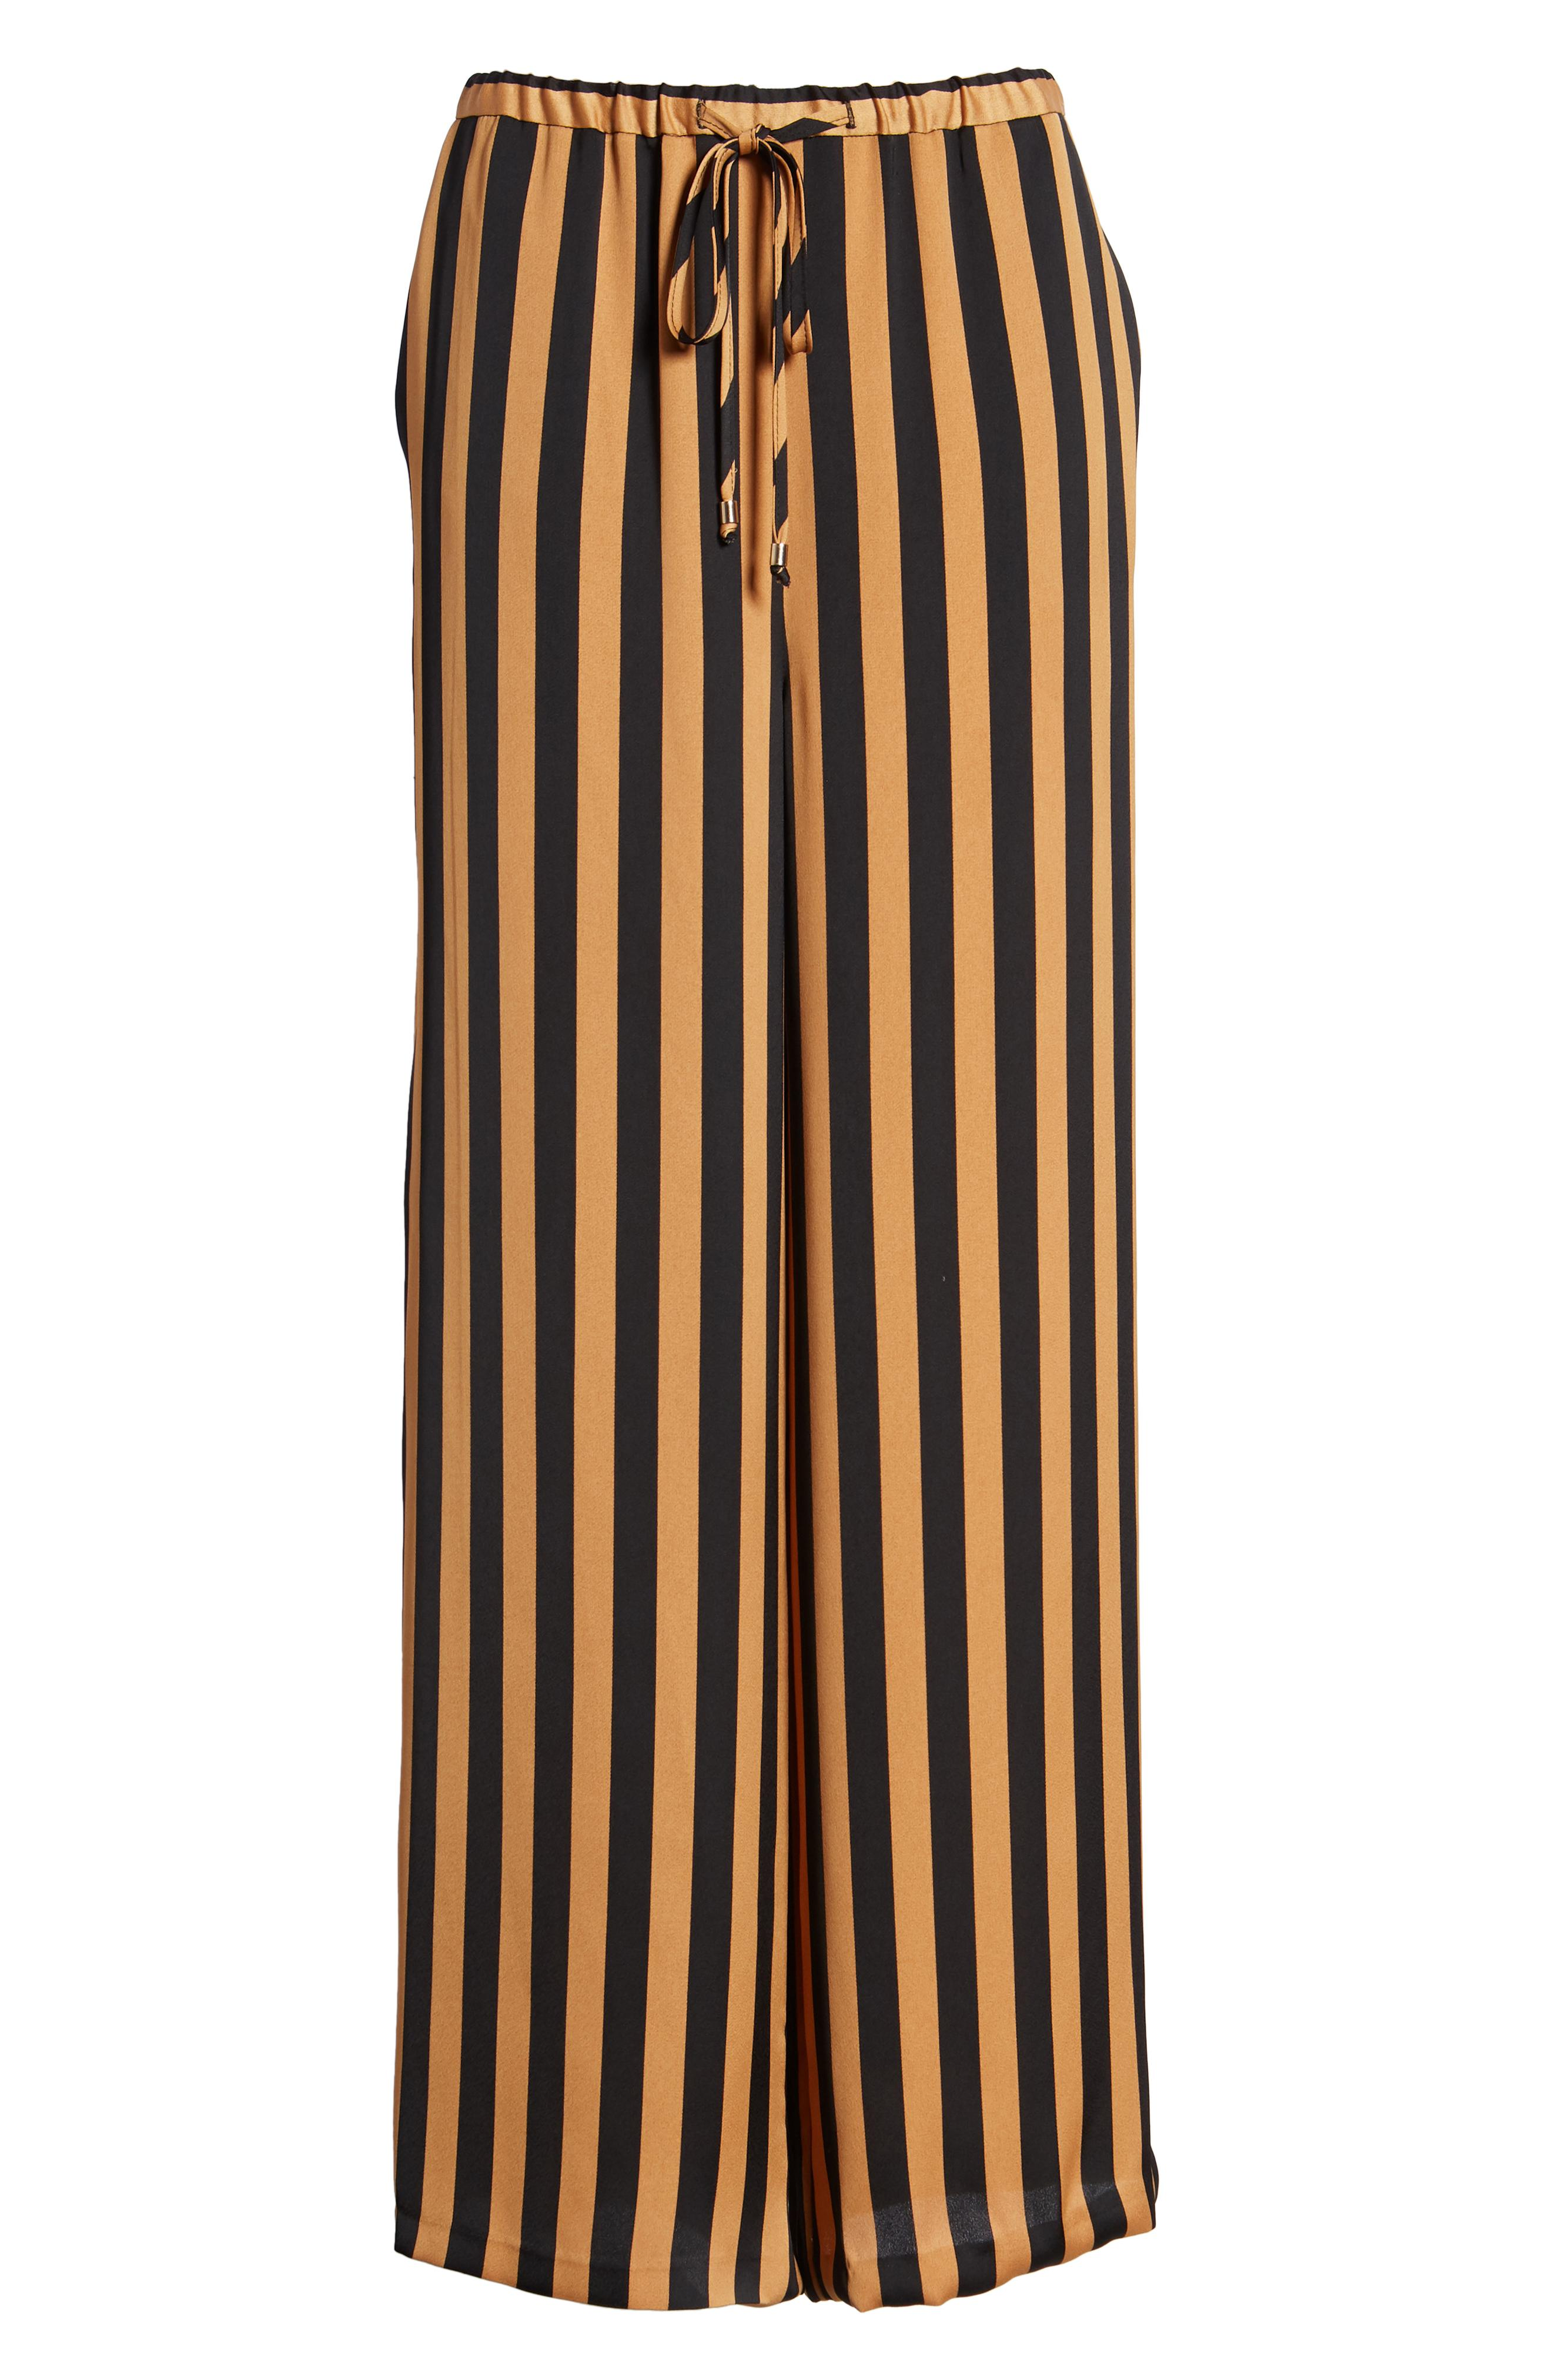 Topshop Soft Stripe Wide Leg Pant -- Sale: $49.90 / After Sale: $85{ }(Image: Courtesy Nordstrom)